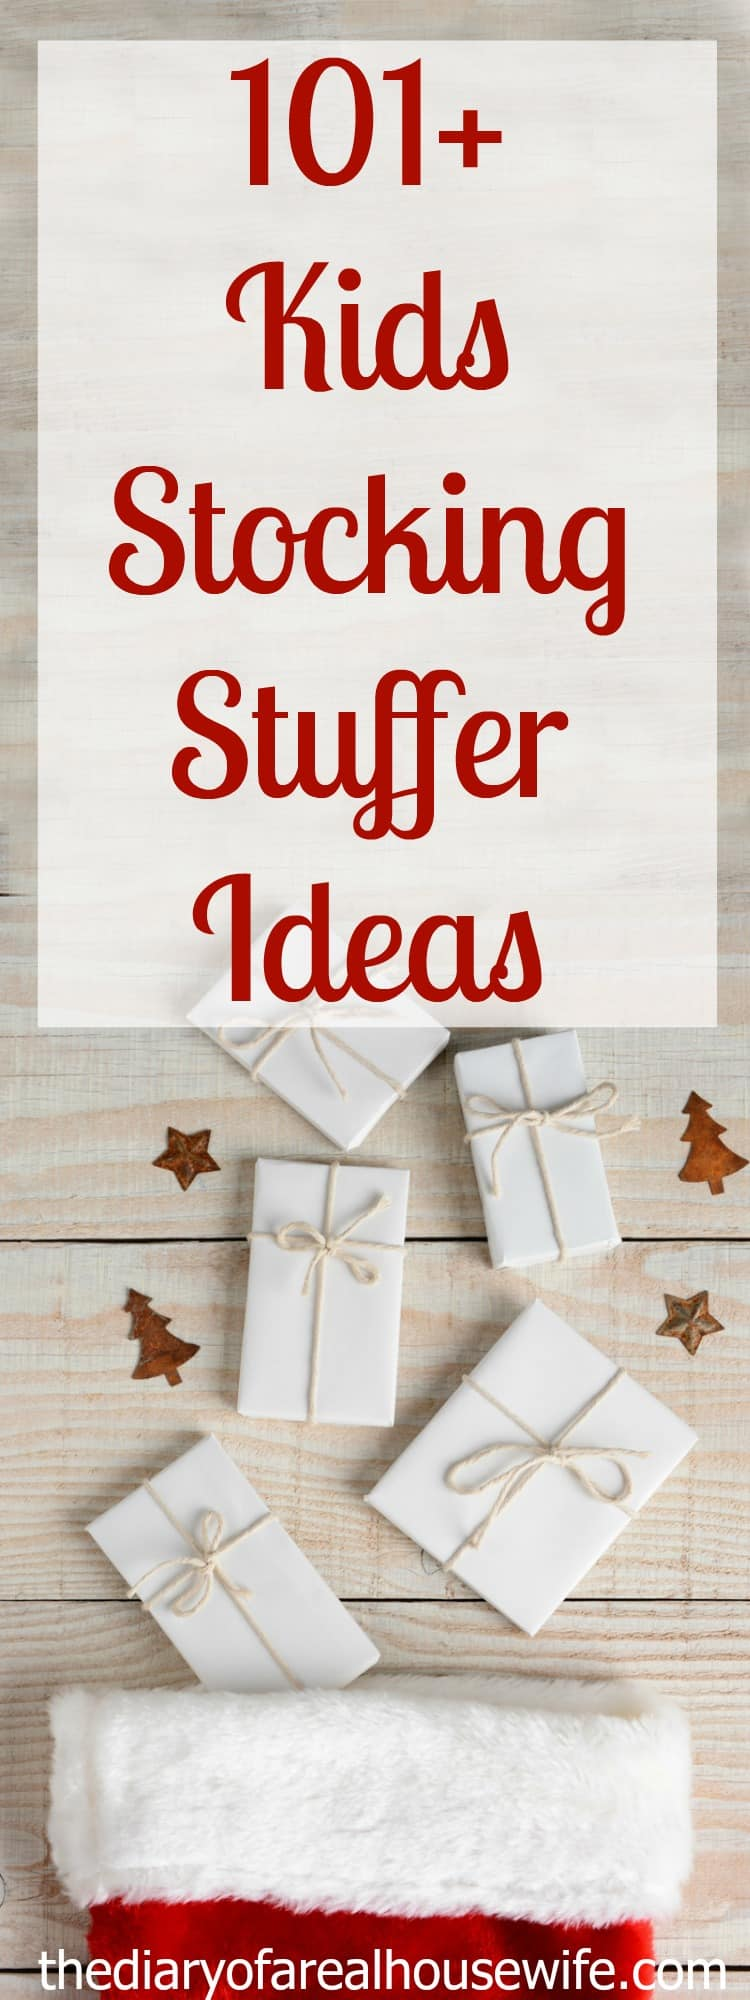 kids-stocking-stuffer-ideas